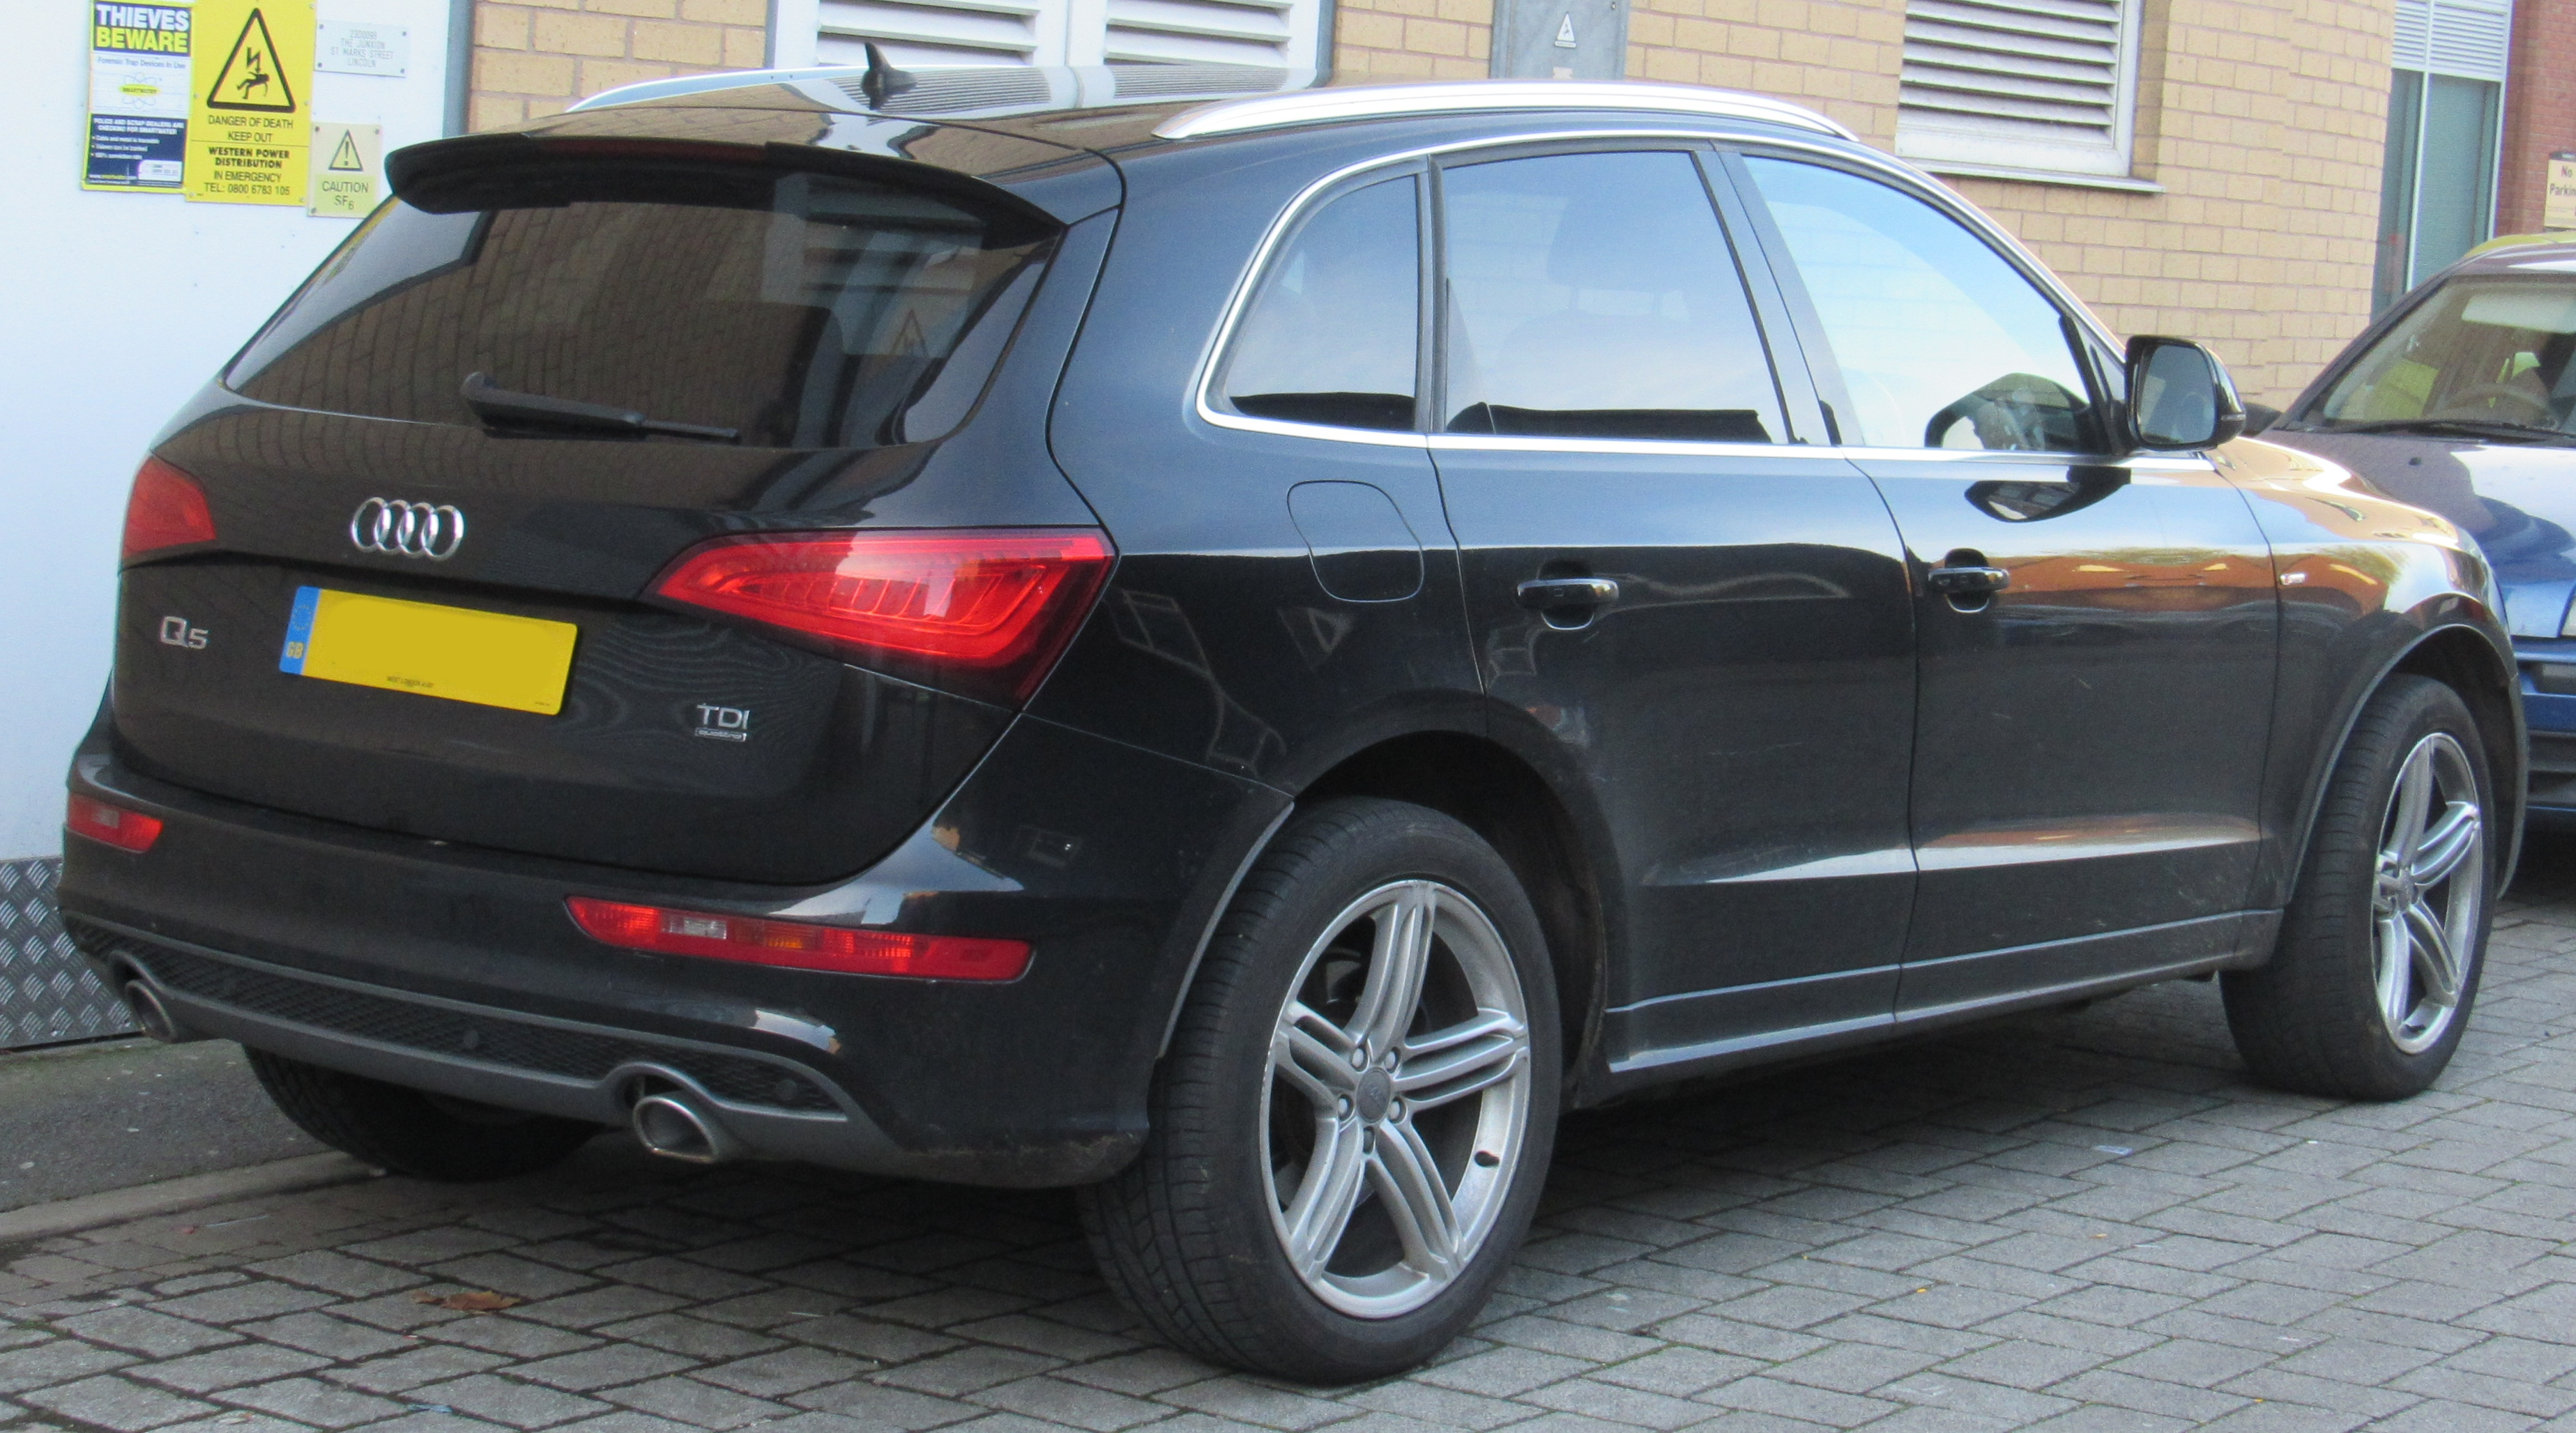 Audi Q5 Wikipedia >> 2014 Audi Q5 S Line | www.pixshark.com - Images Galleries With A Bite!